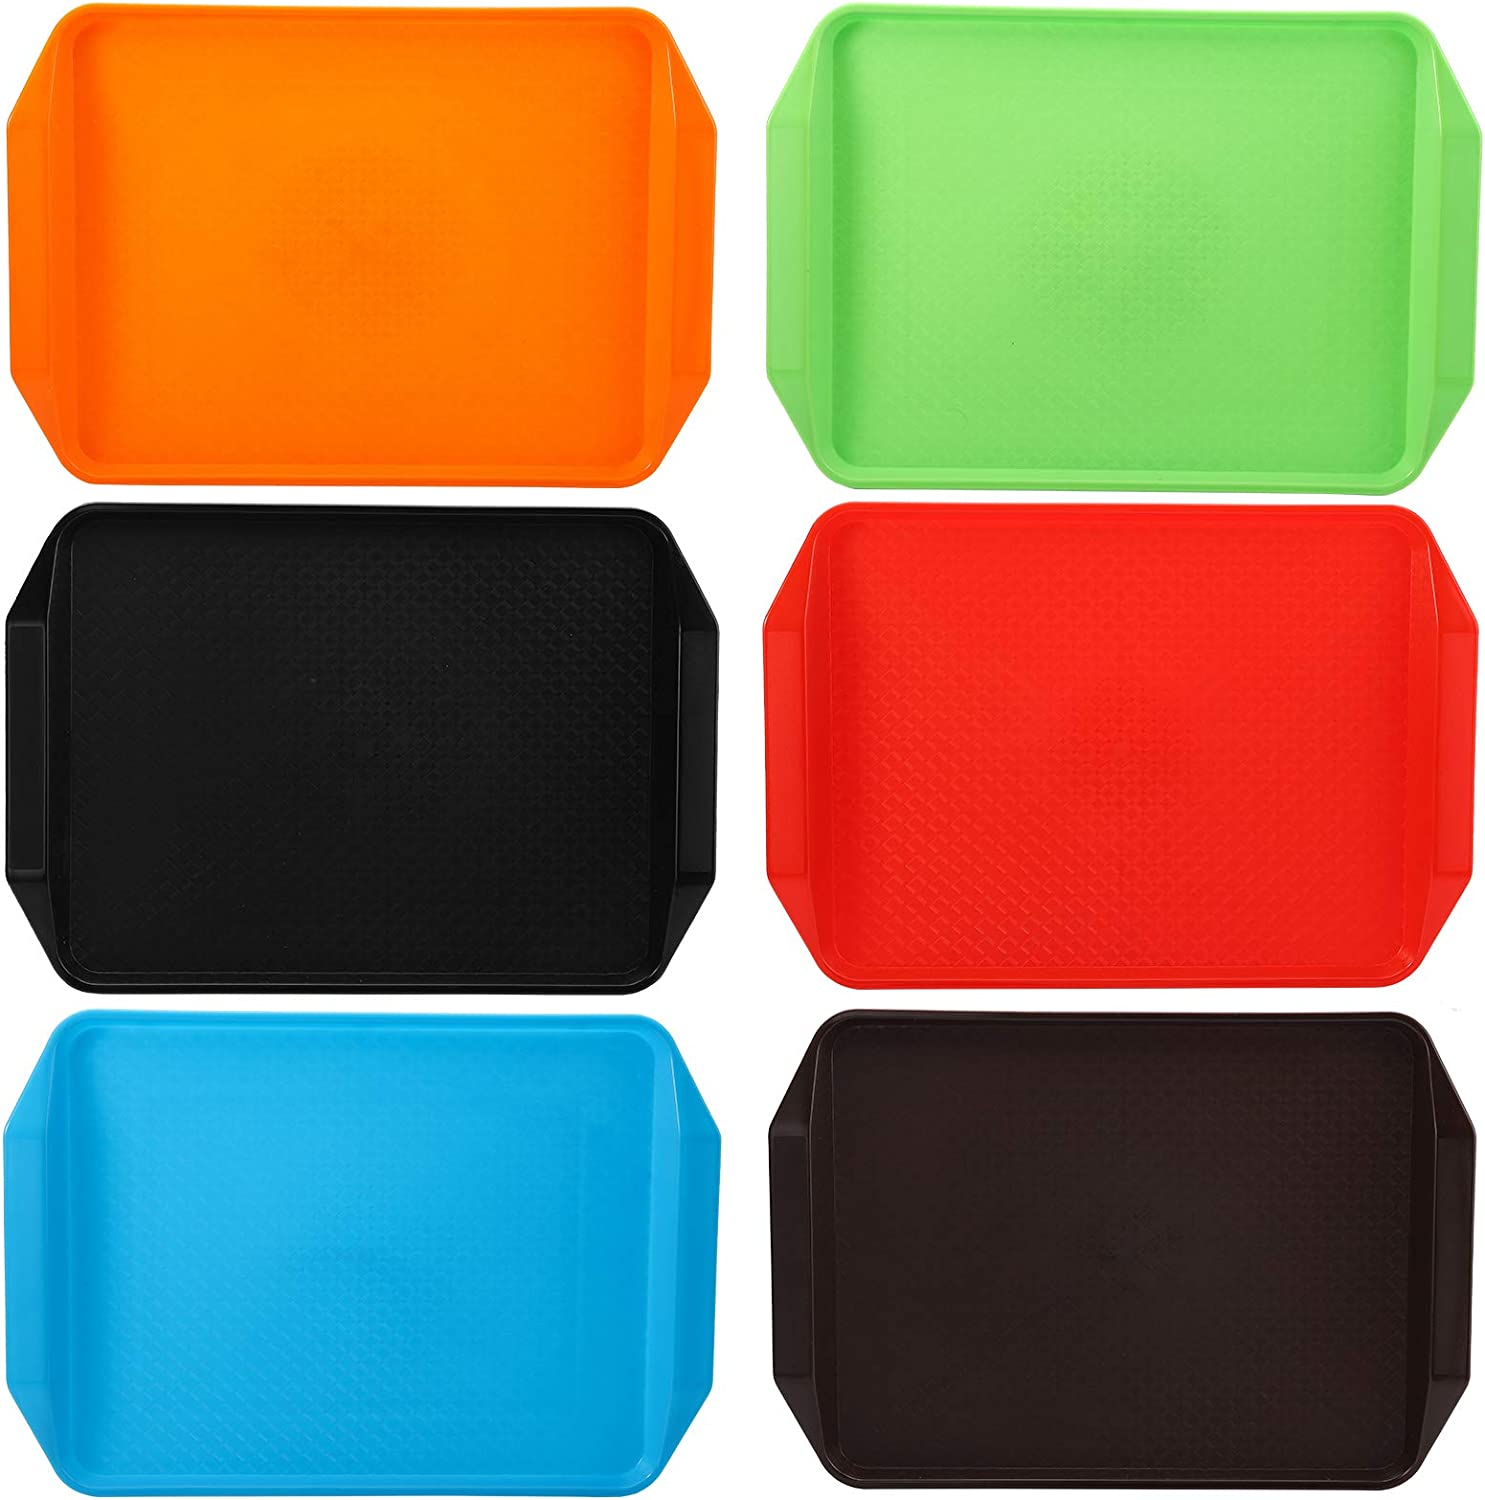 Cedilis 6 Pack Plastic Fast Food Trays for Eating, Assorted Colors, 17IN x 11.8IN